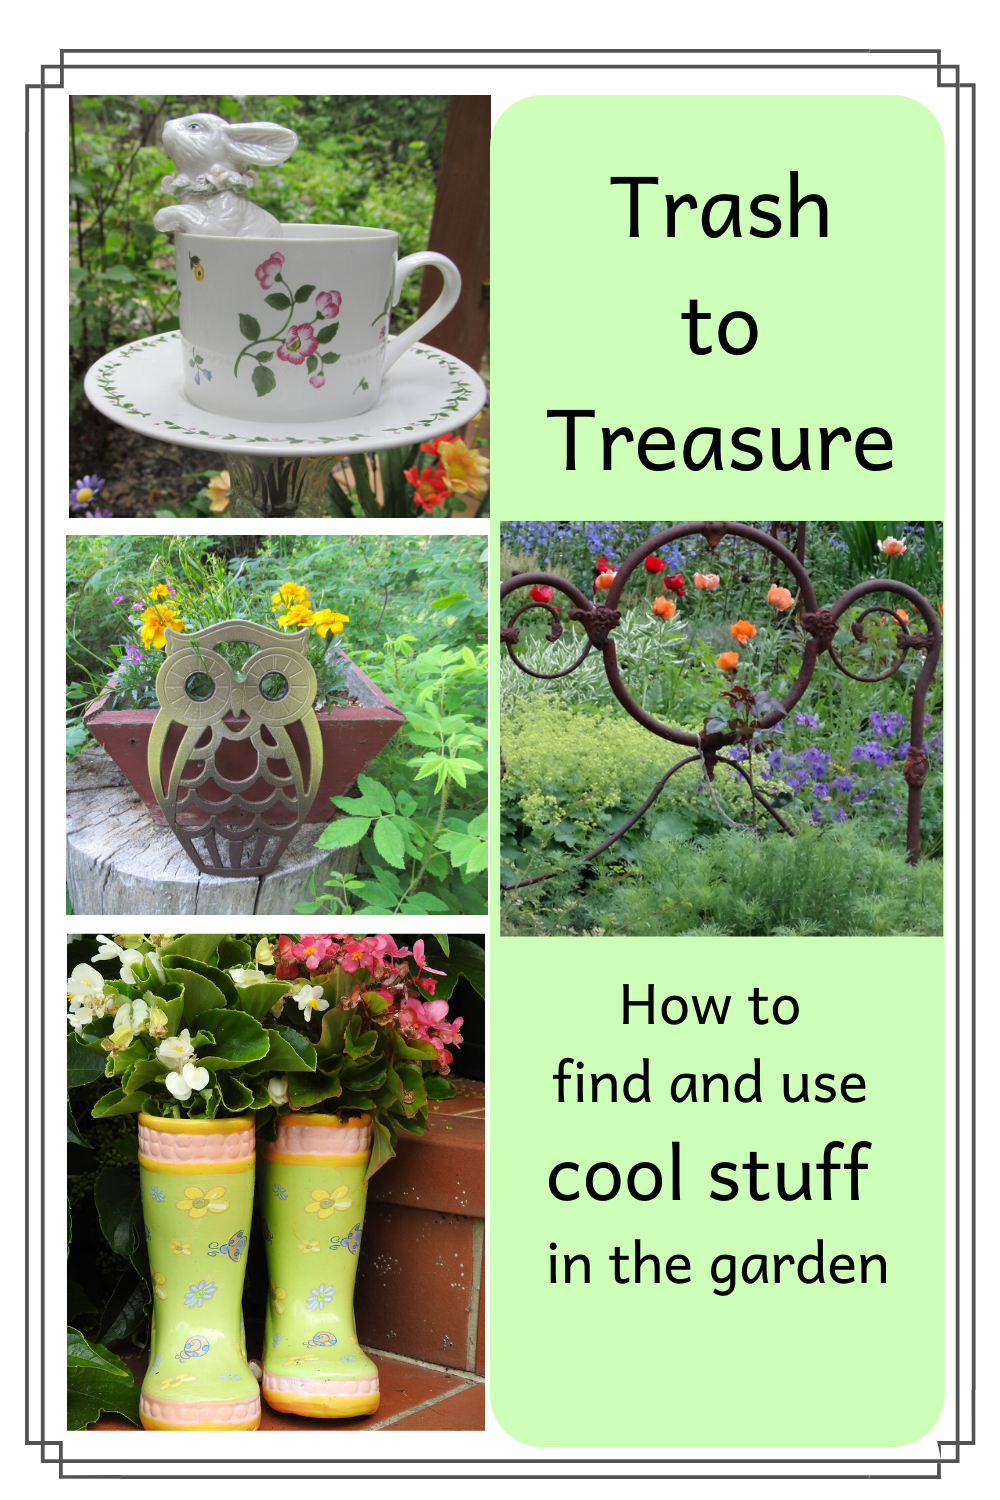 Discover what interesting Trash to Treasure items make great garden decor